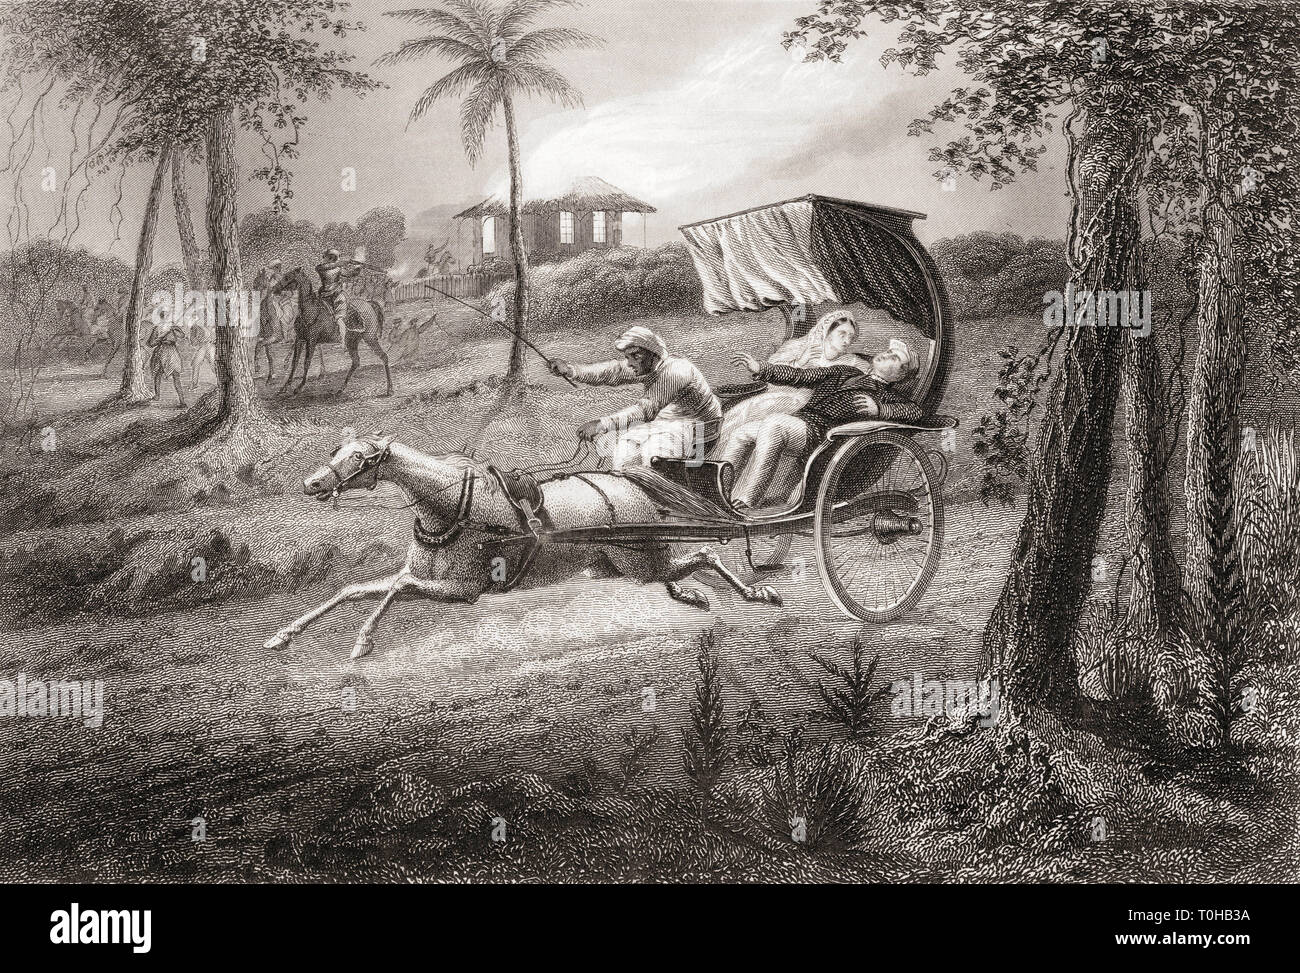 Dr Graham shot in his buggy by Sealkote Mutineers, India, Asia, 1857 Stock Photo